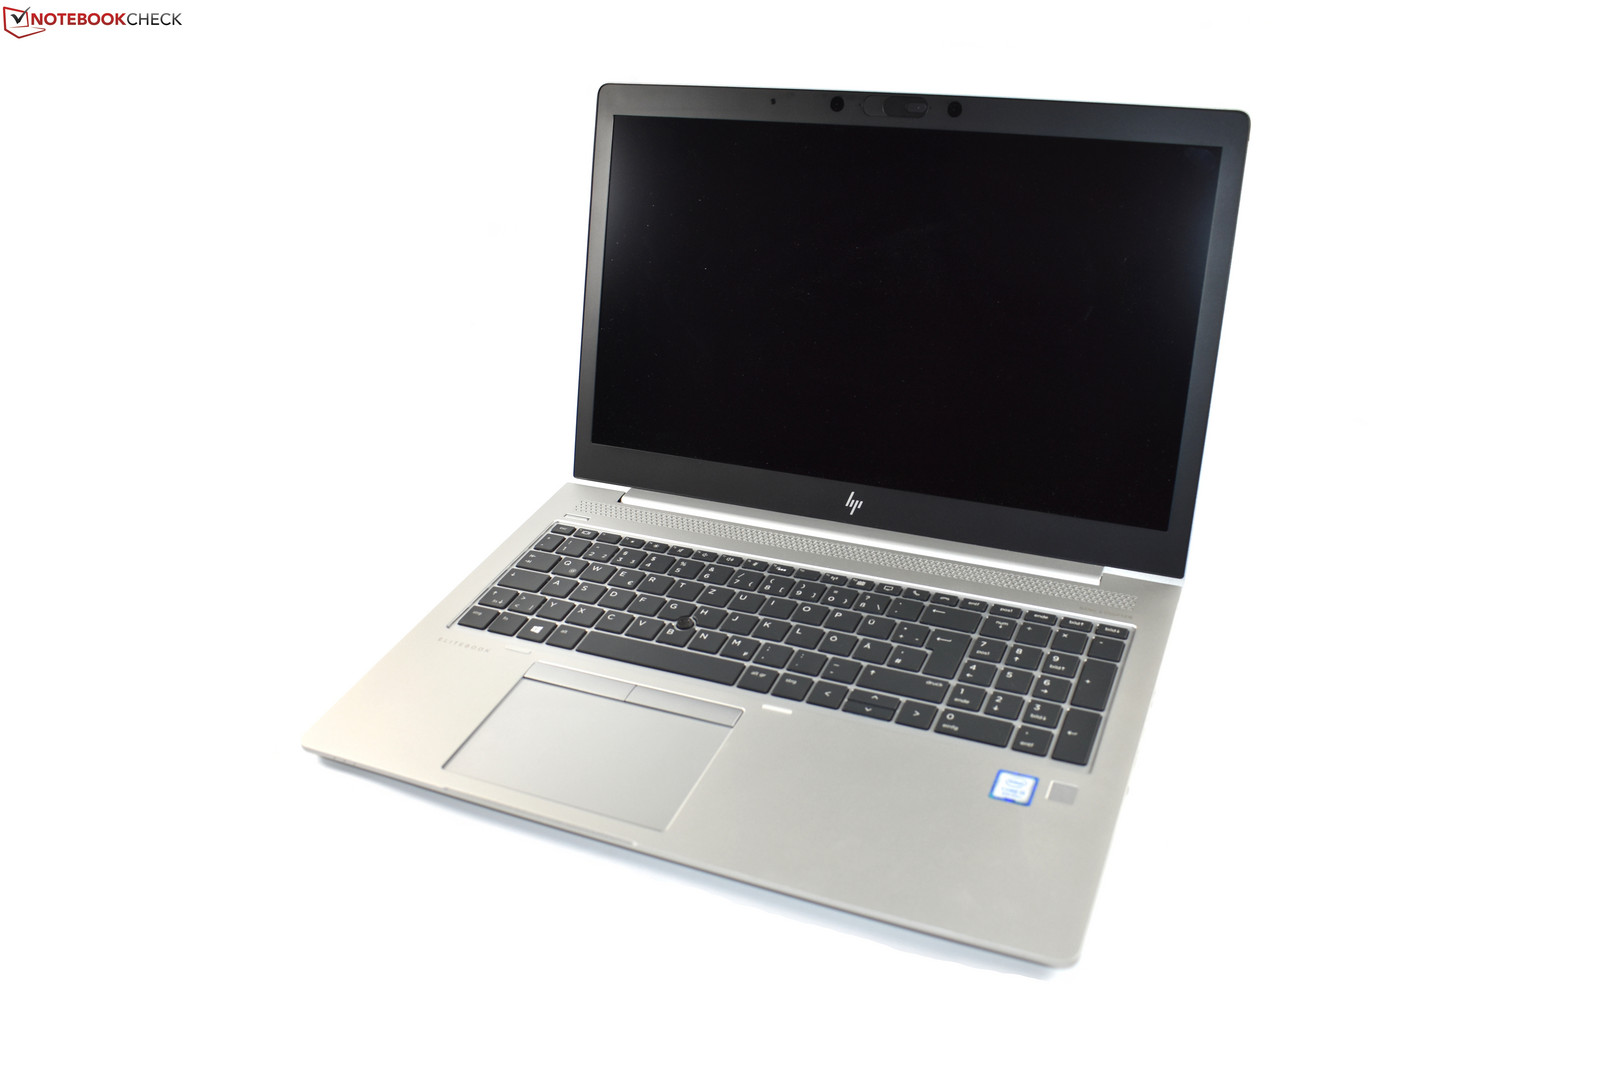 HP EliteBook 850 G5 (i5-8250U, FHD) Laptop Review